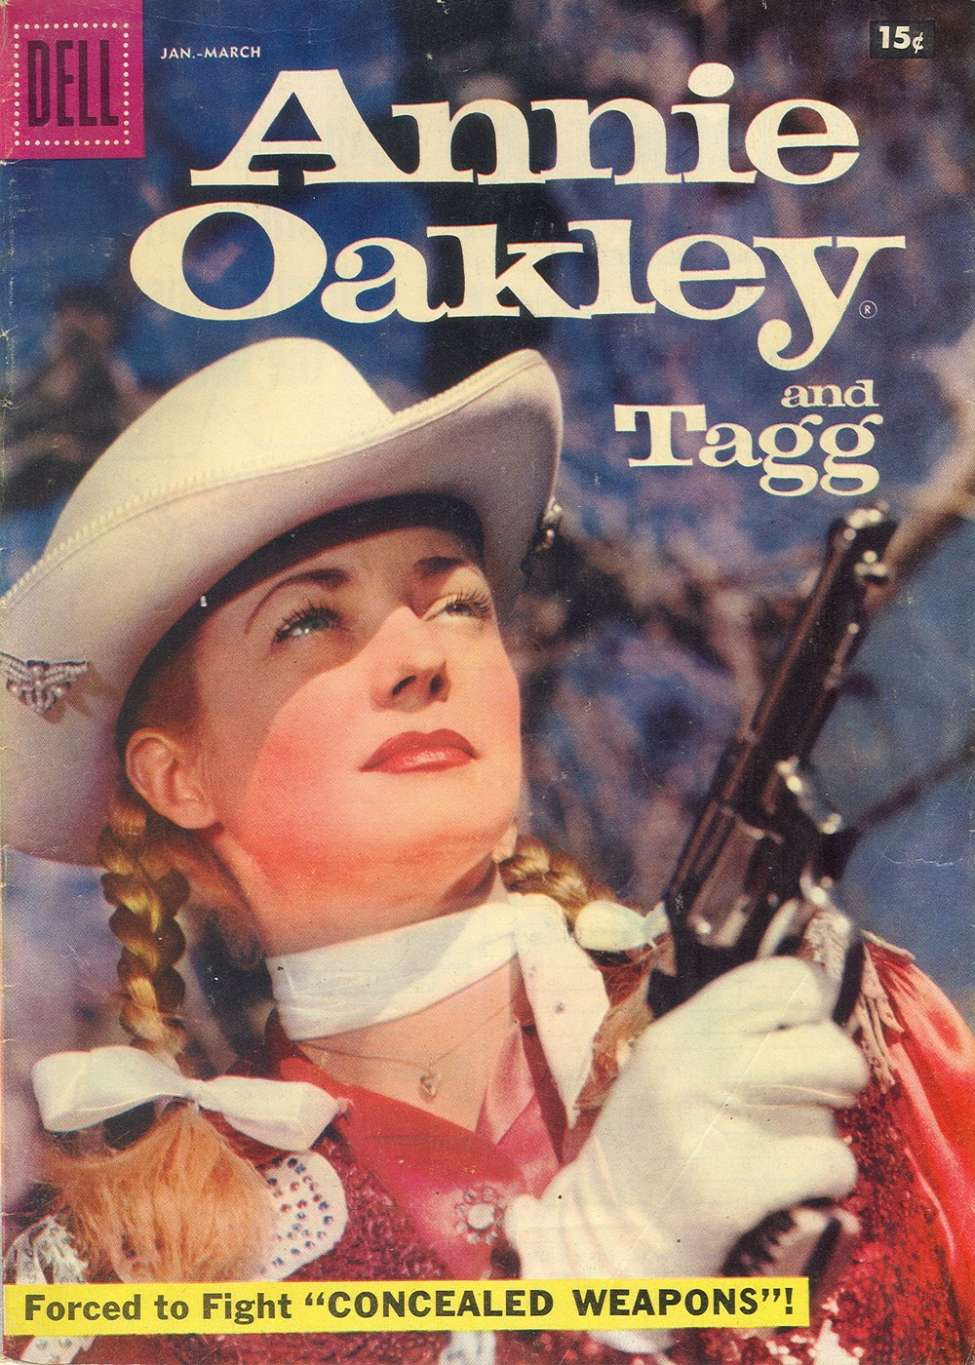 Books About Annie Oakley